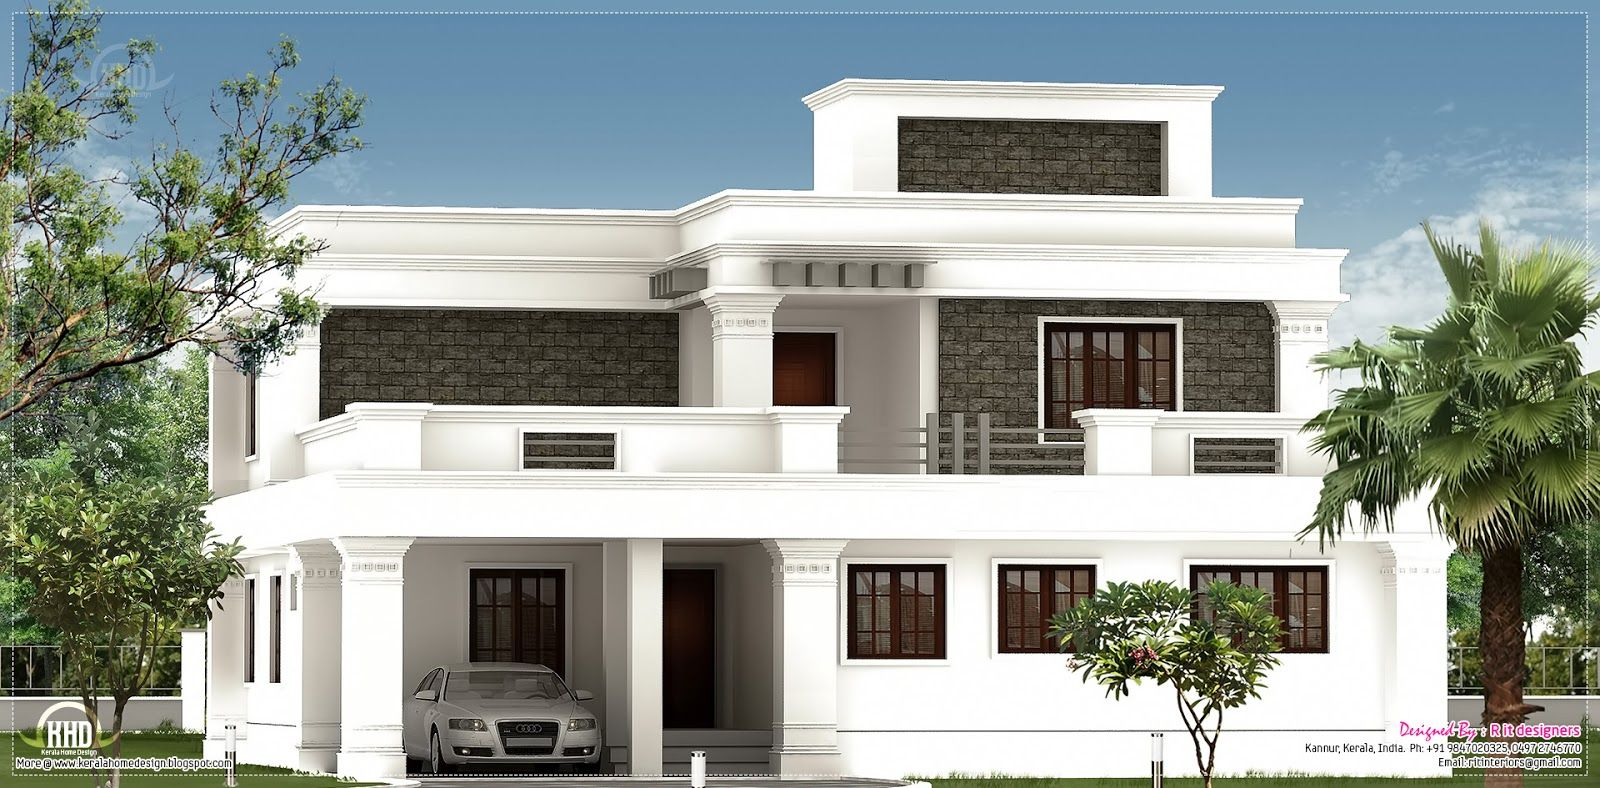 Flat roof homes designs flat roof villa exterior in 2400 Designers homes